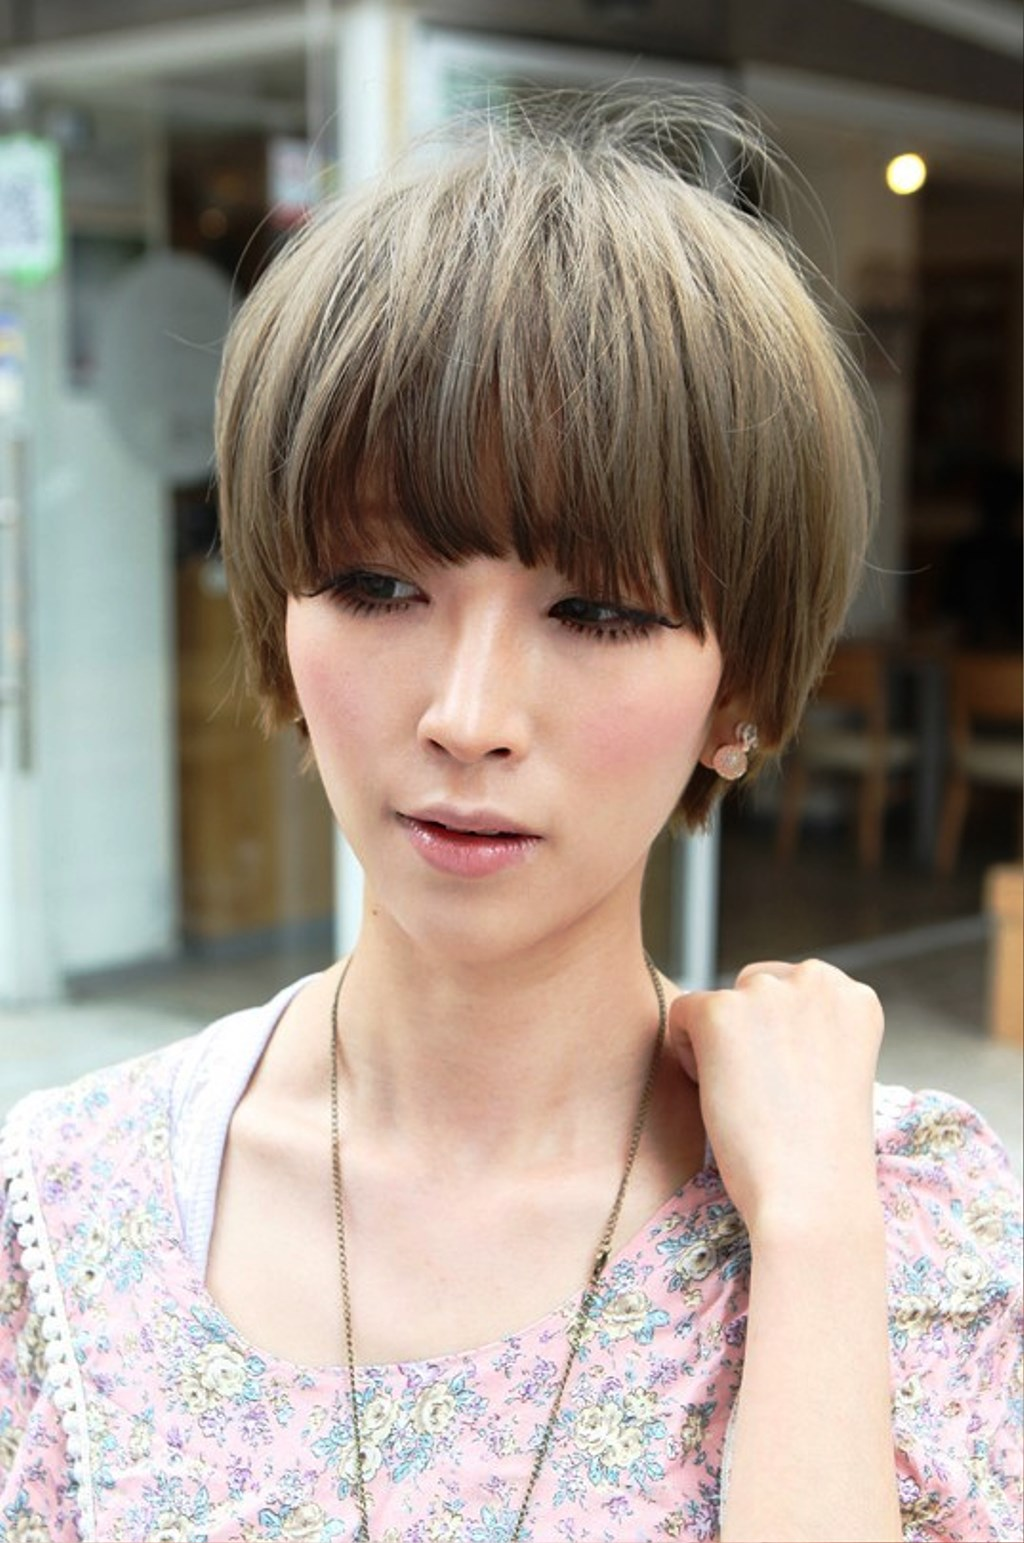 Cool Short Asian Haircut Hairstyle Ideas Be Hairstyles